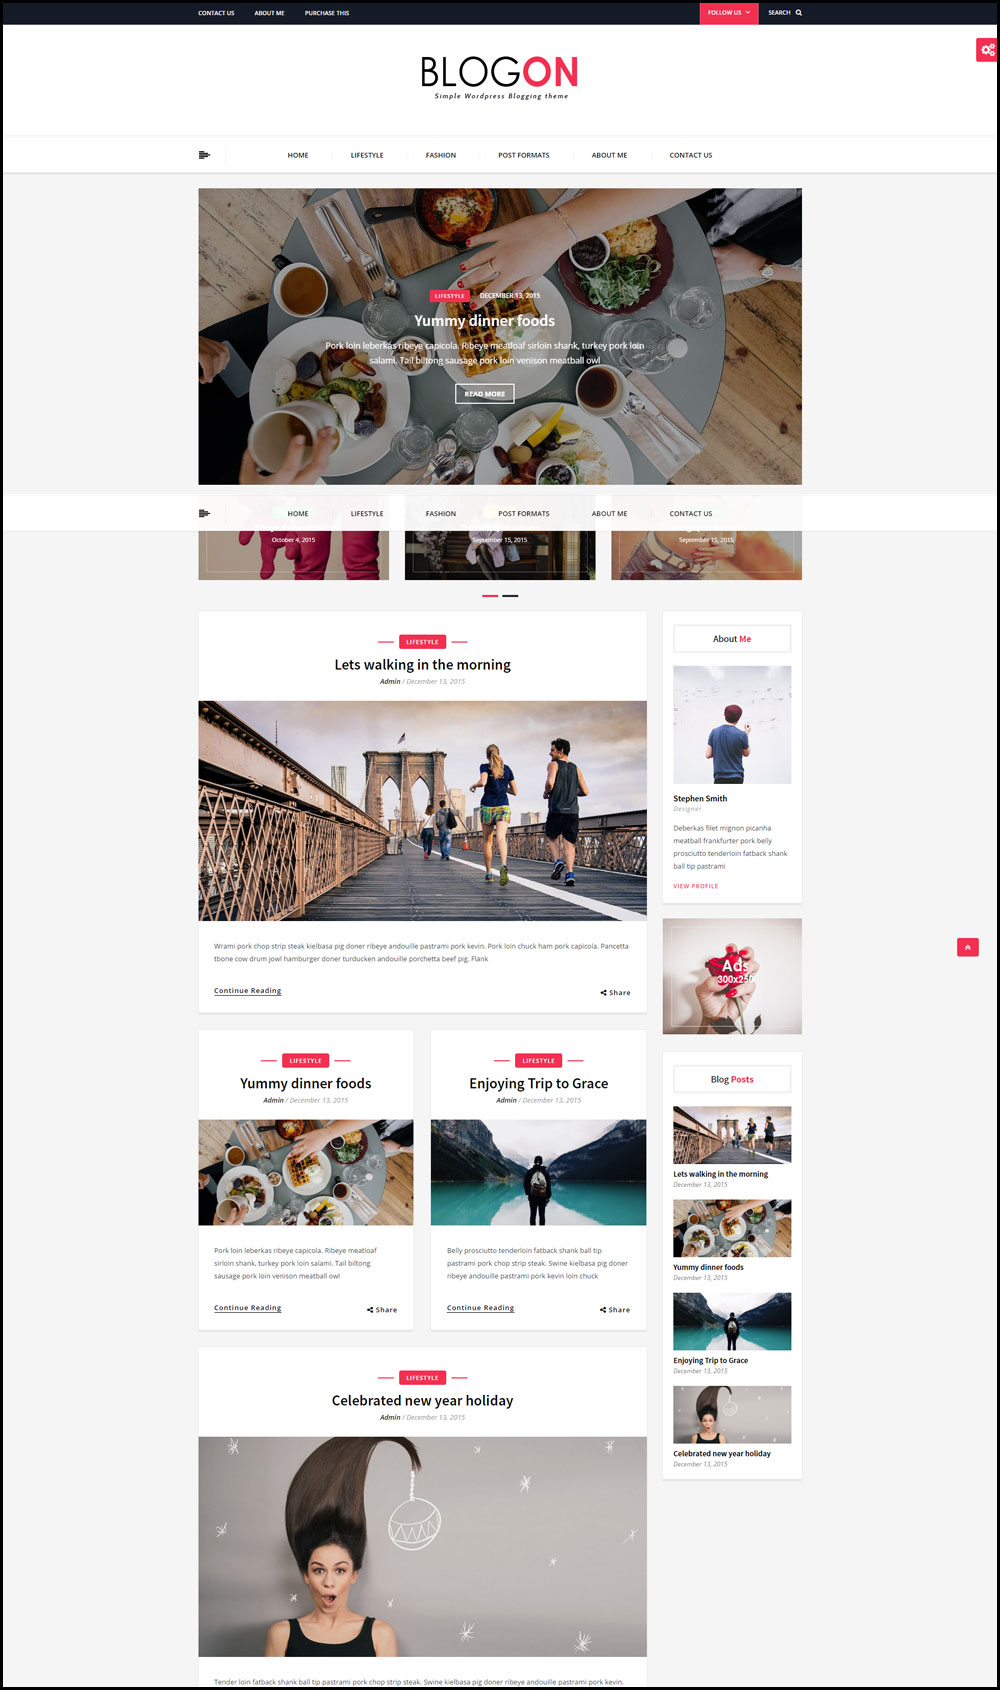 Blogon – A Responsive WordPress Theme For Travel Bloggers